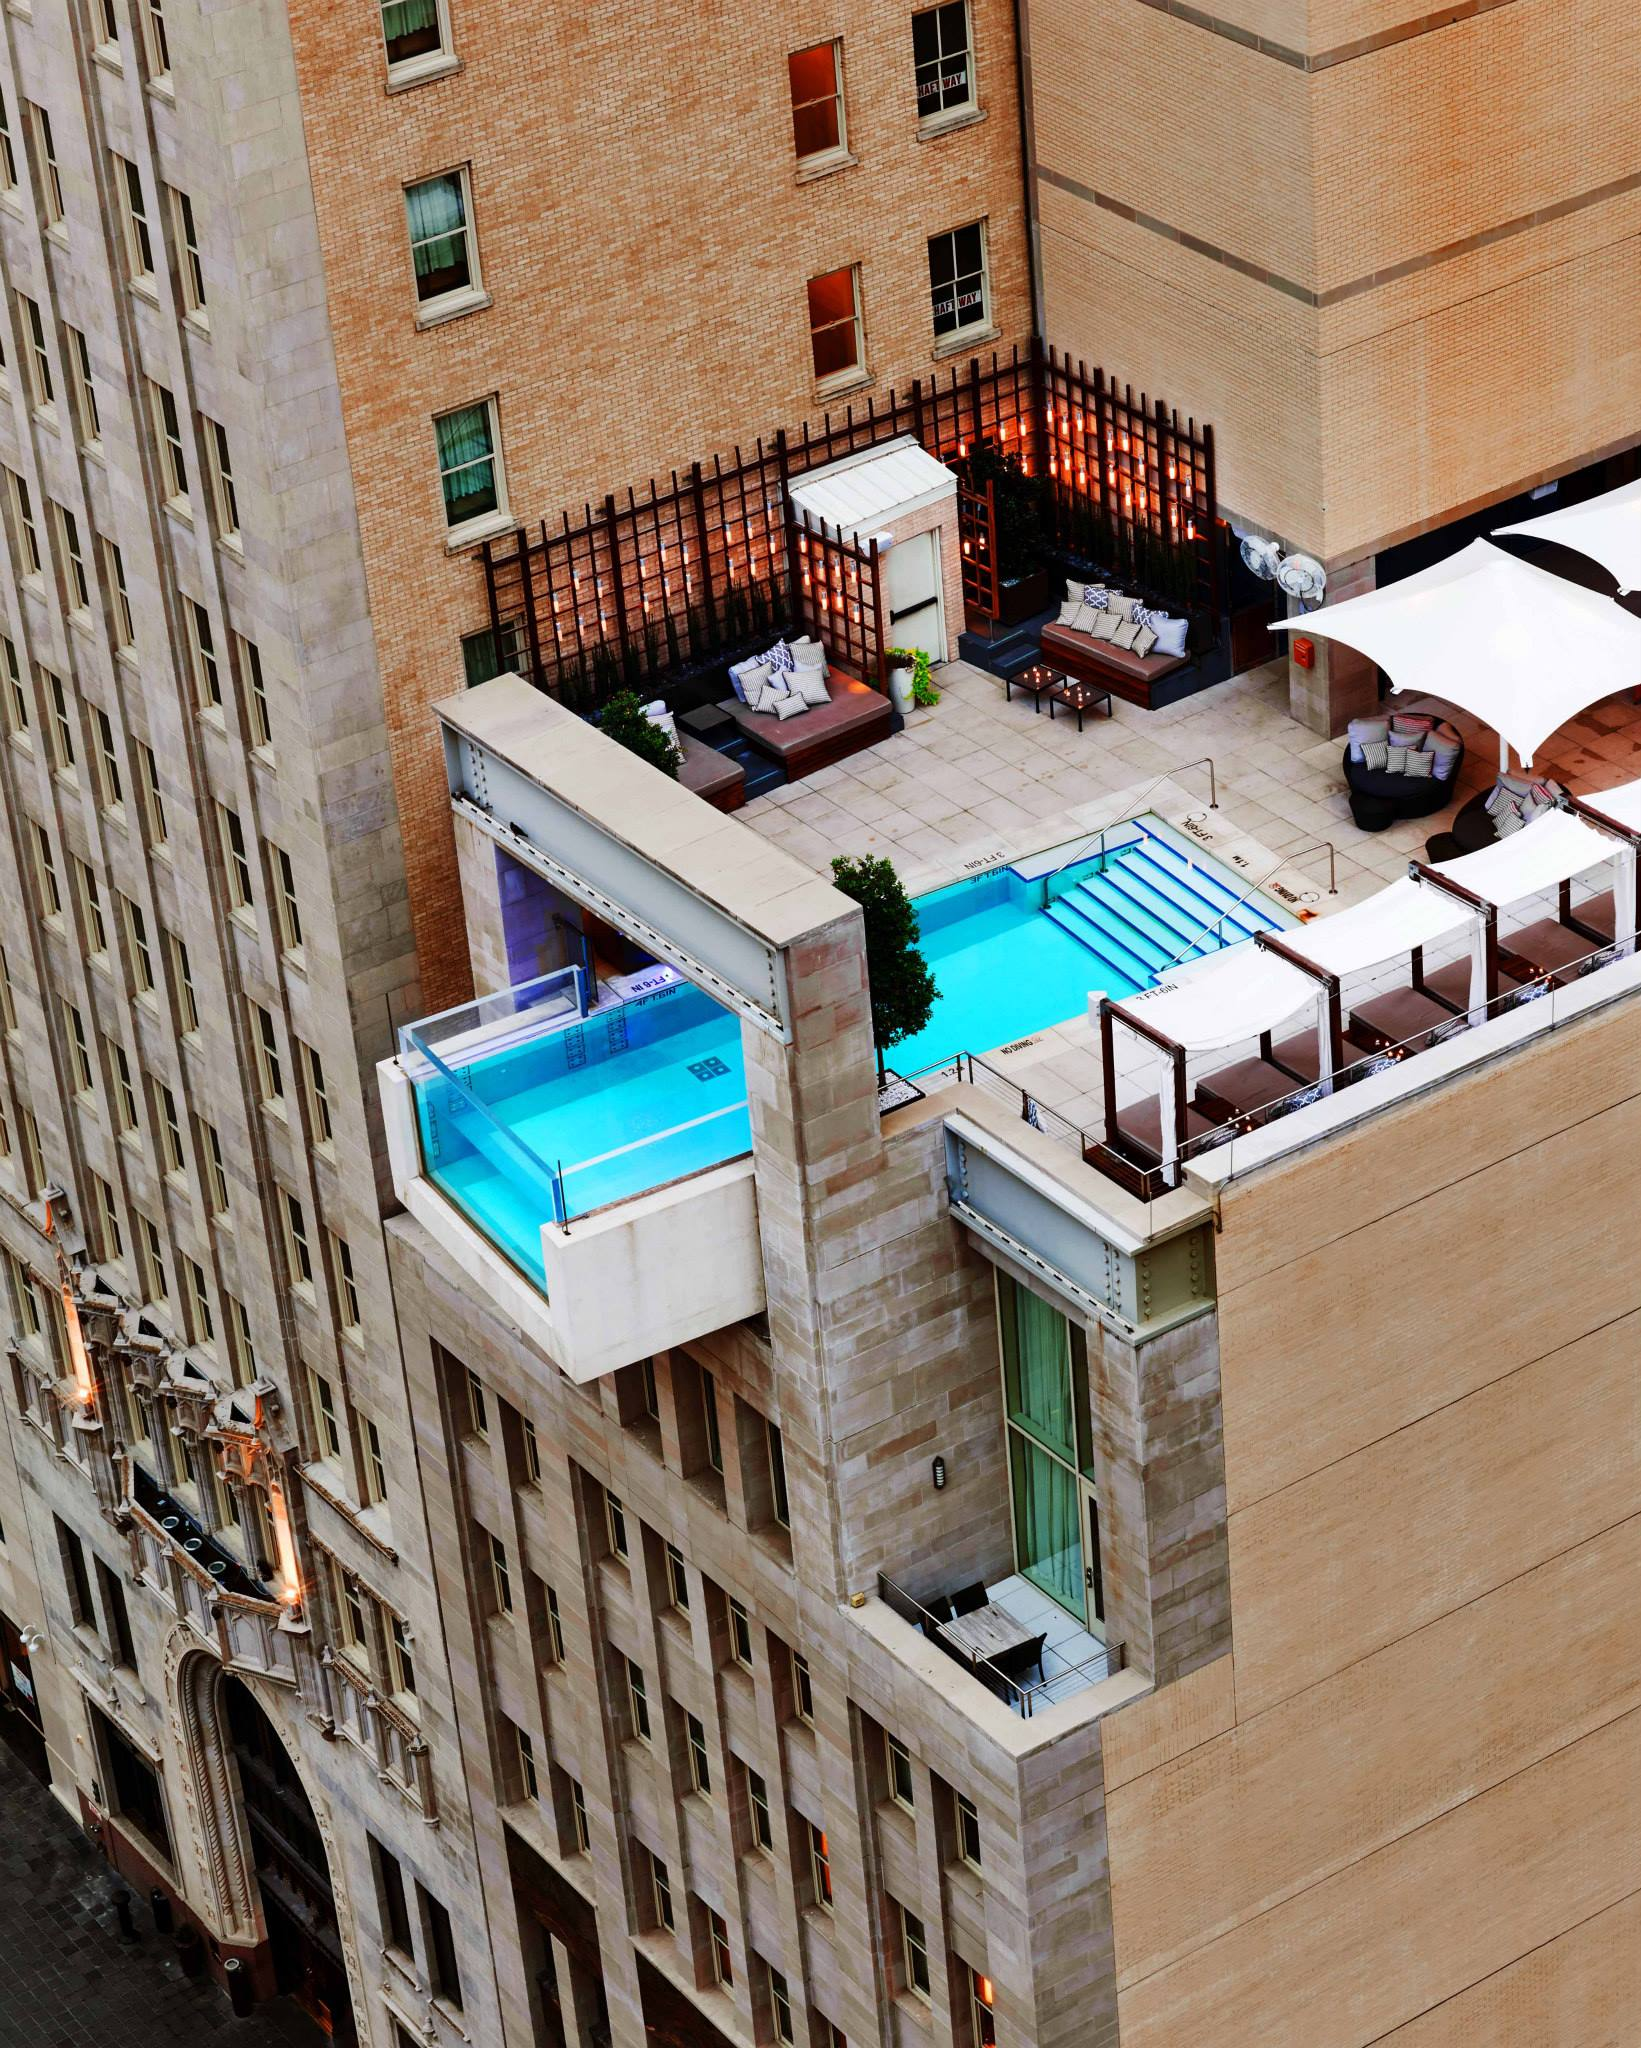 5 Hotels Dallas: The Joule | Love Daily Dose